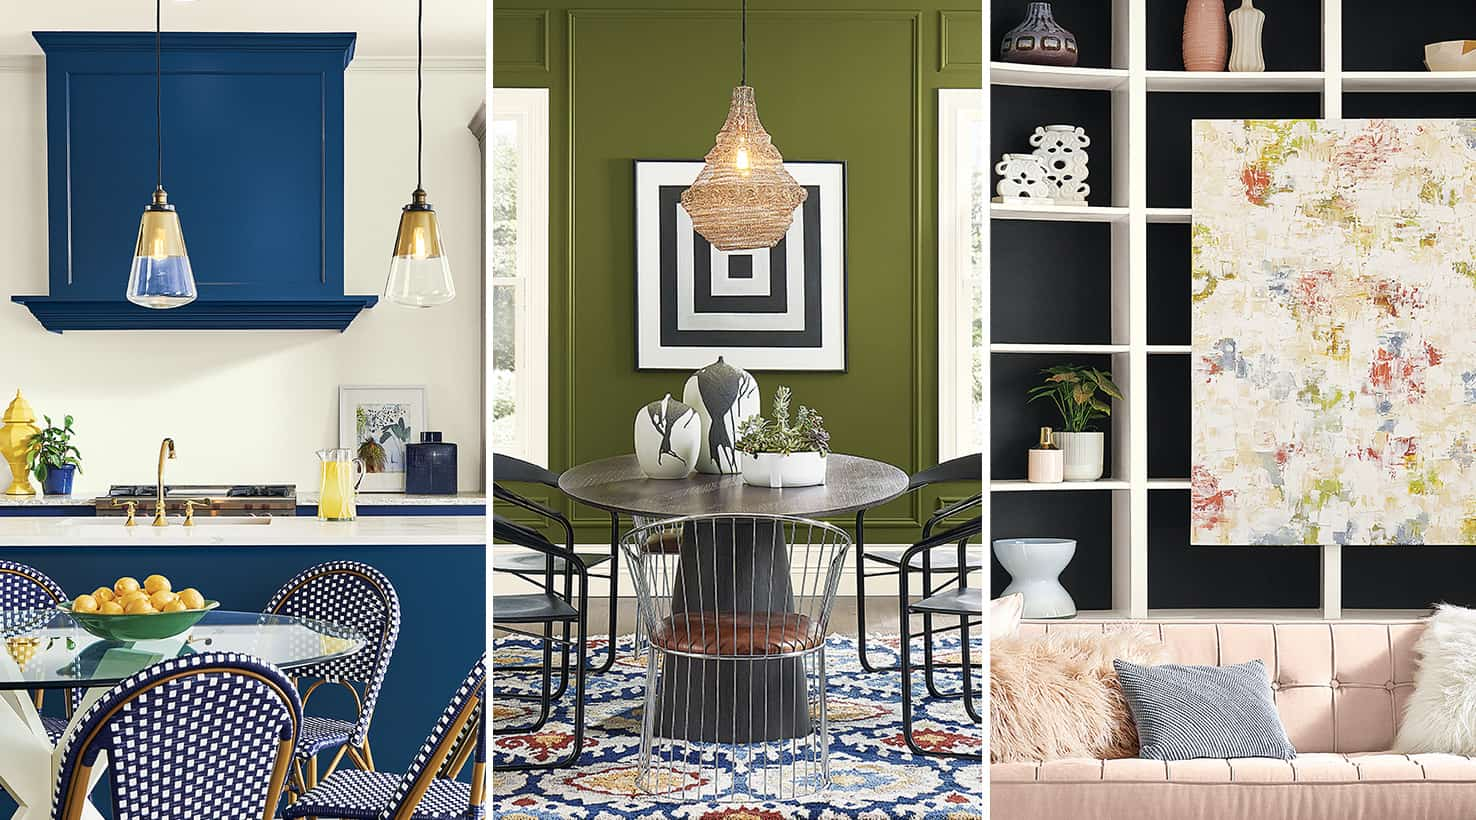 featured image showing three colorful interiors by Sherwin Williams